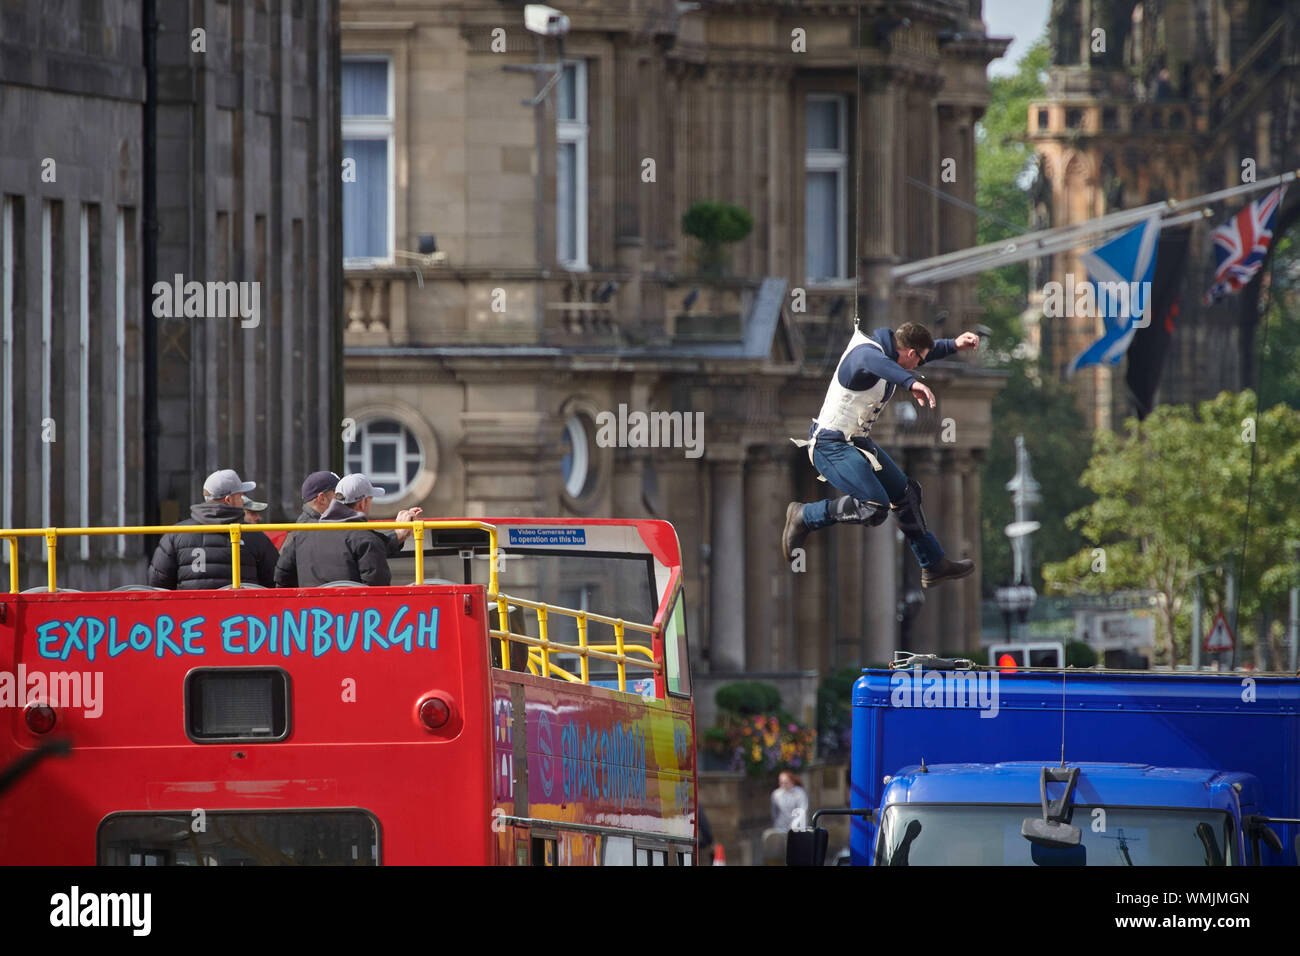 Edinburgh September 05 2019; A stuntman jumps from an open top bus onto a lorry during rehearsals for Fast and Furious 9 at Waterloo Place. Credit: Steven Scott Taylor/Alamy Live News Stock Photo